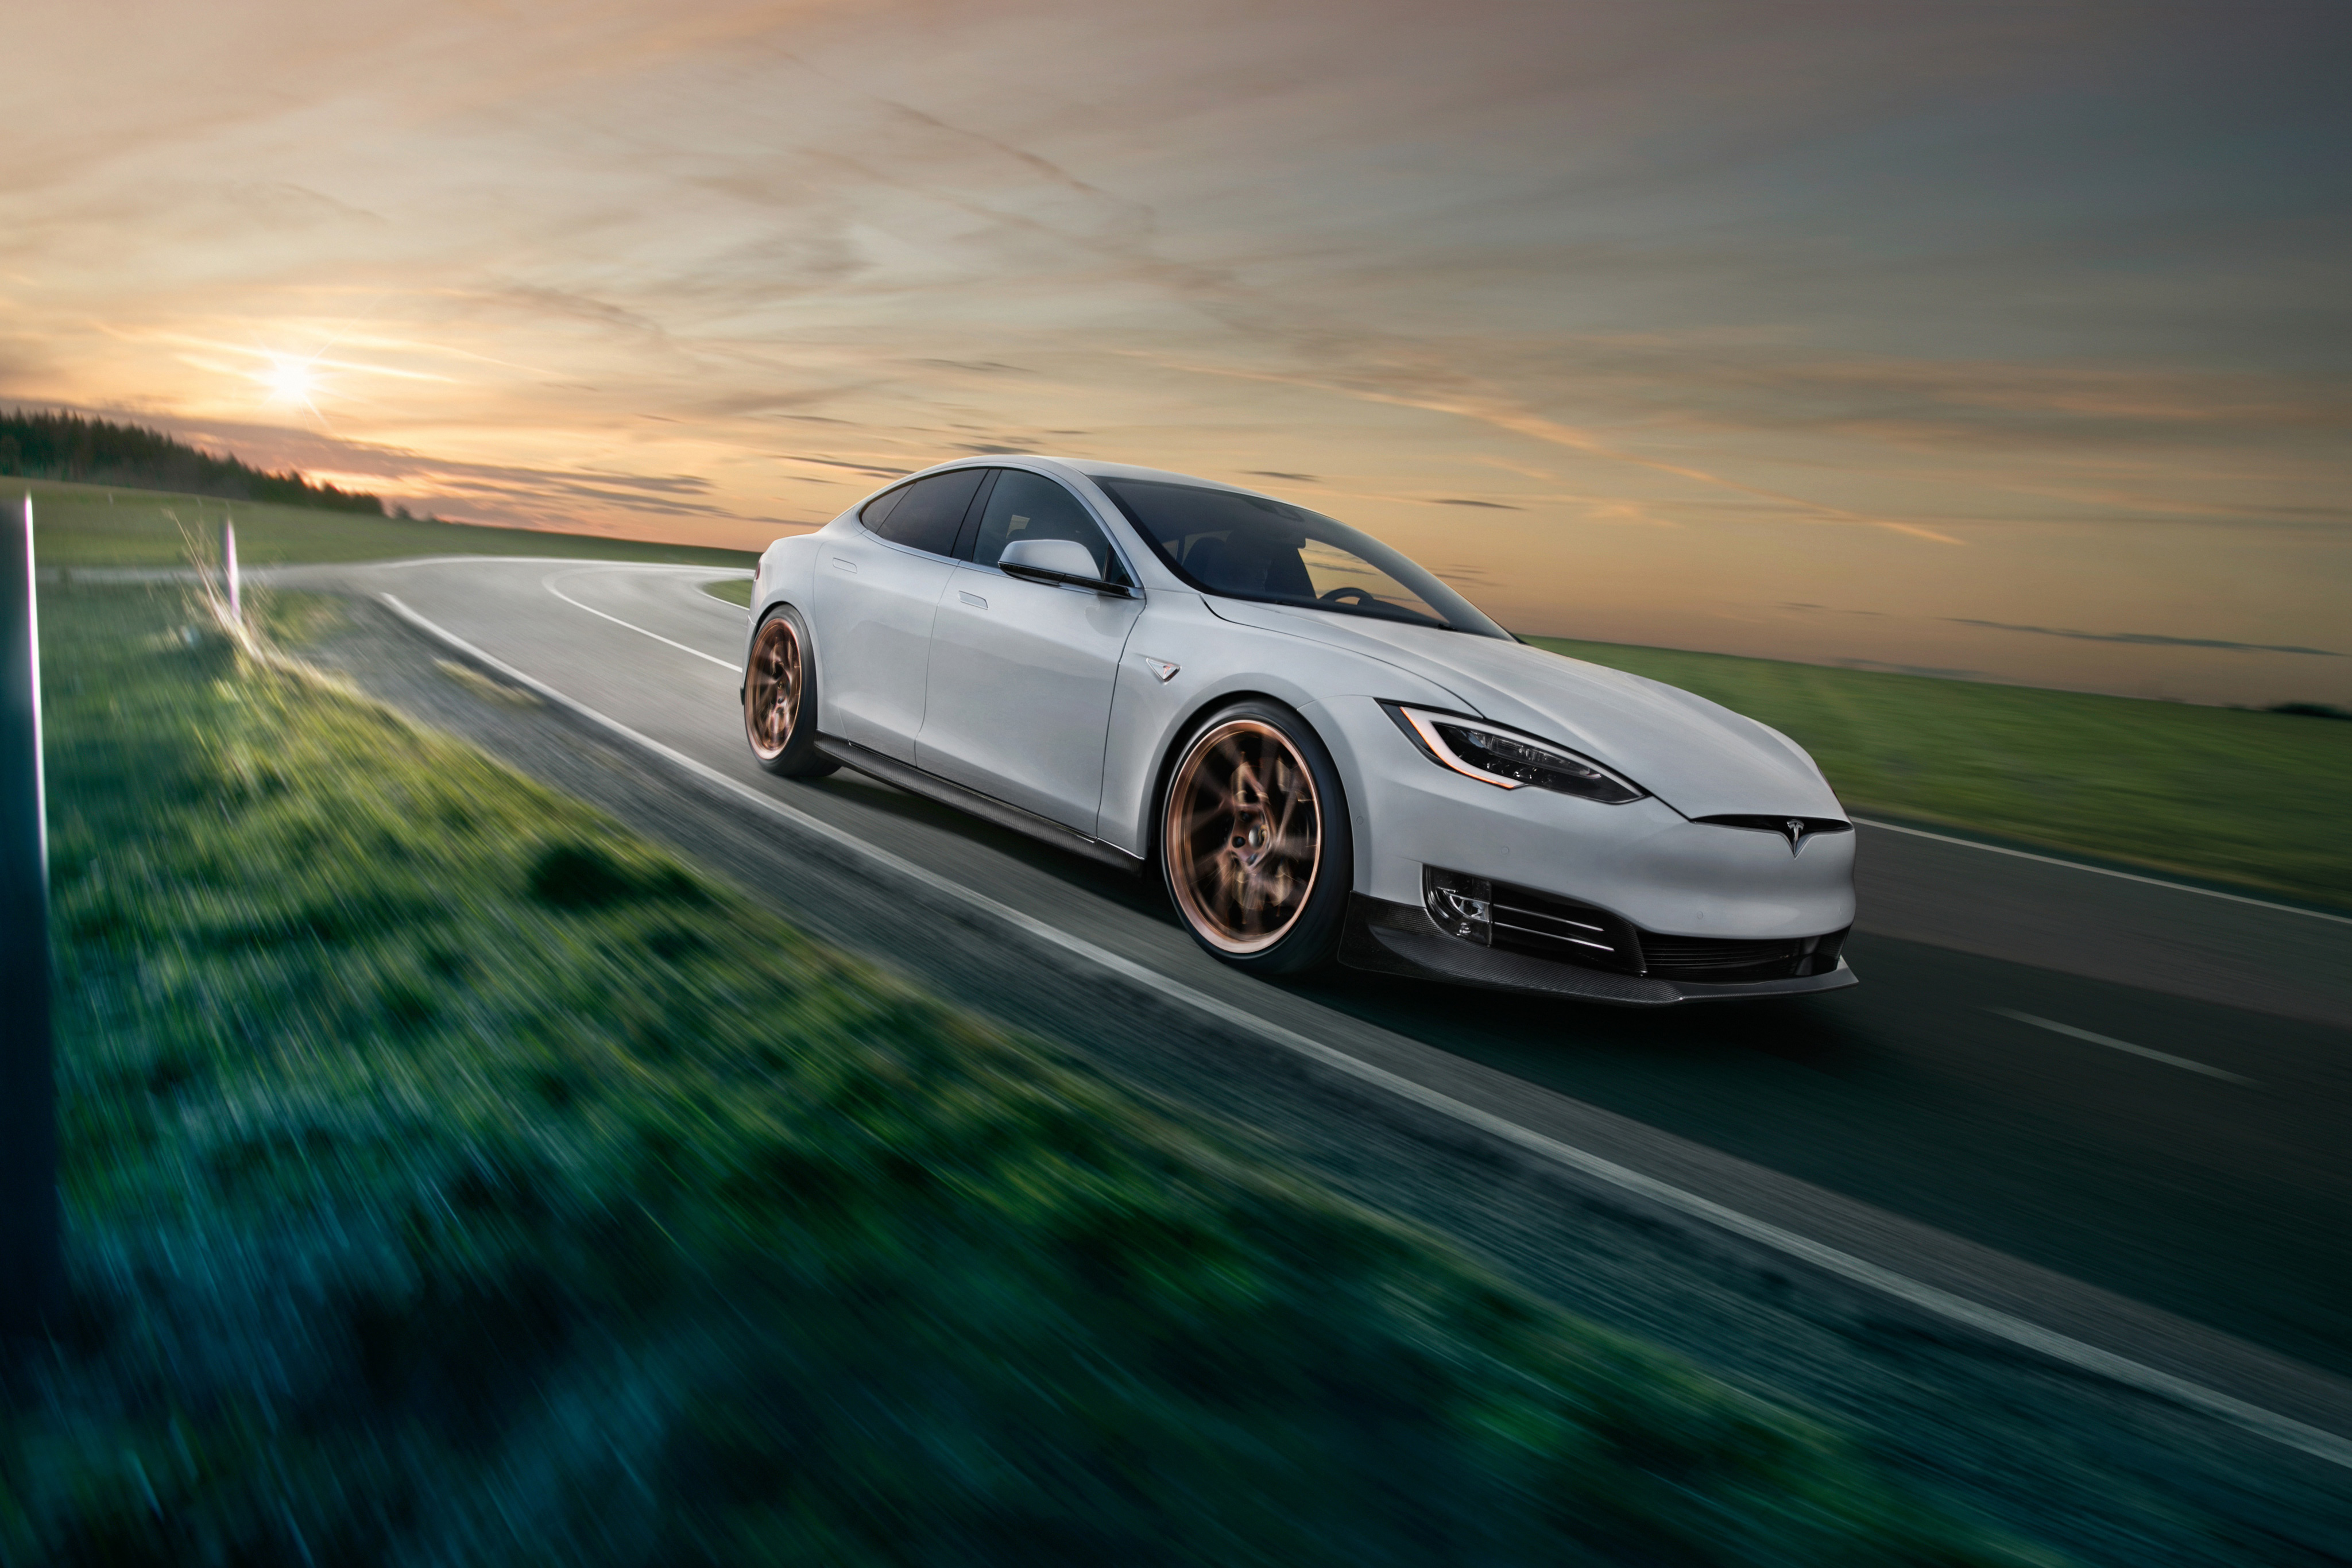 Tesla model s novitec hd cars 4k wallpapers images backgrounds photos and pictures - Tesla wallpaper android ...